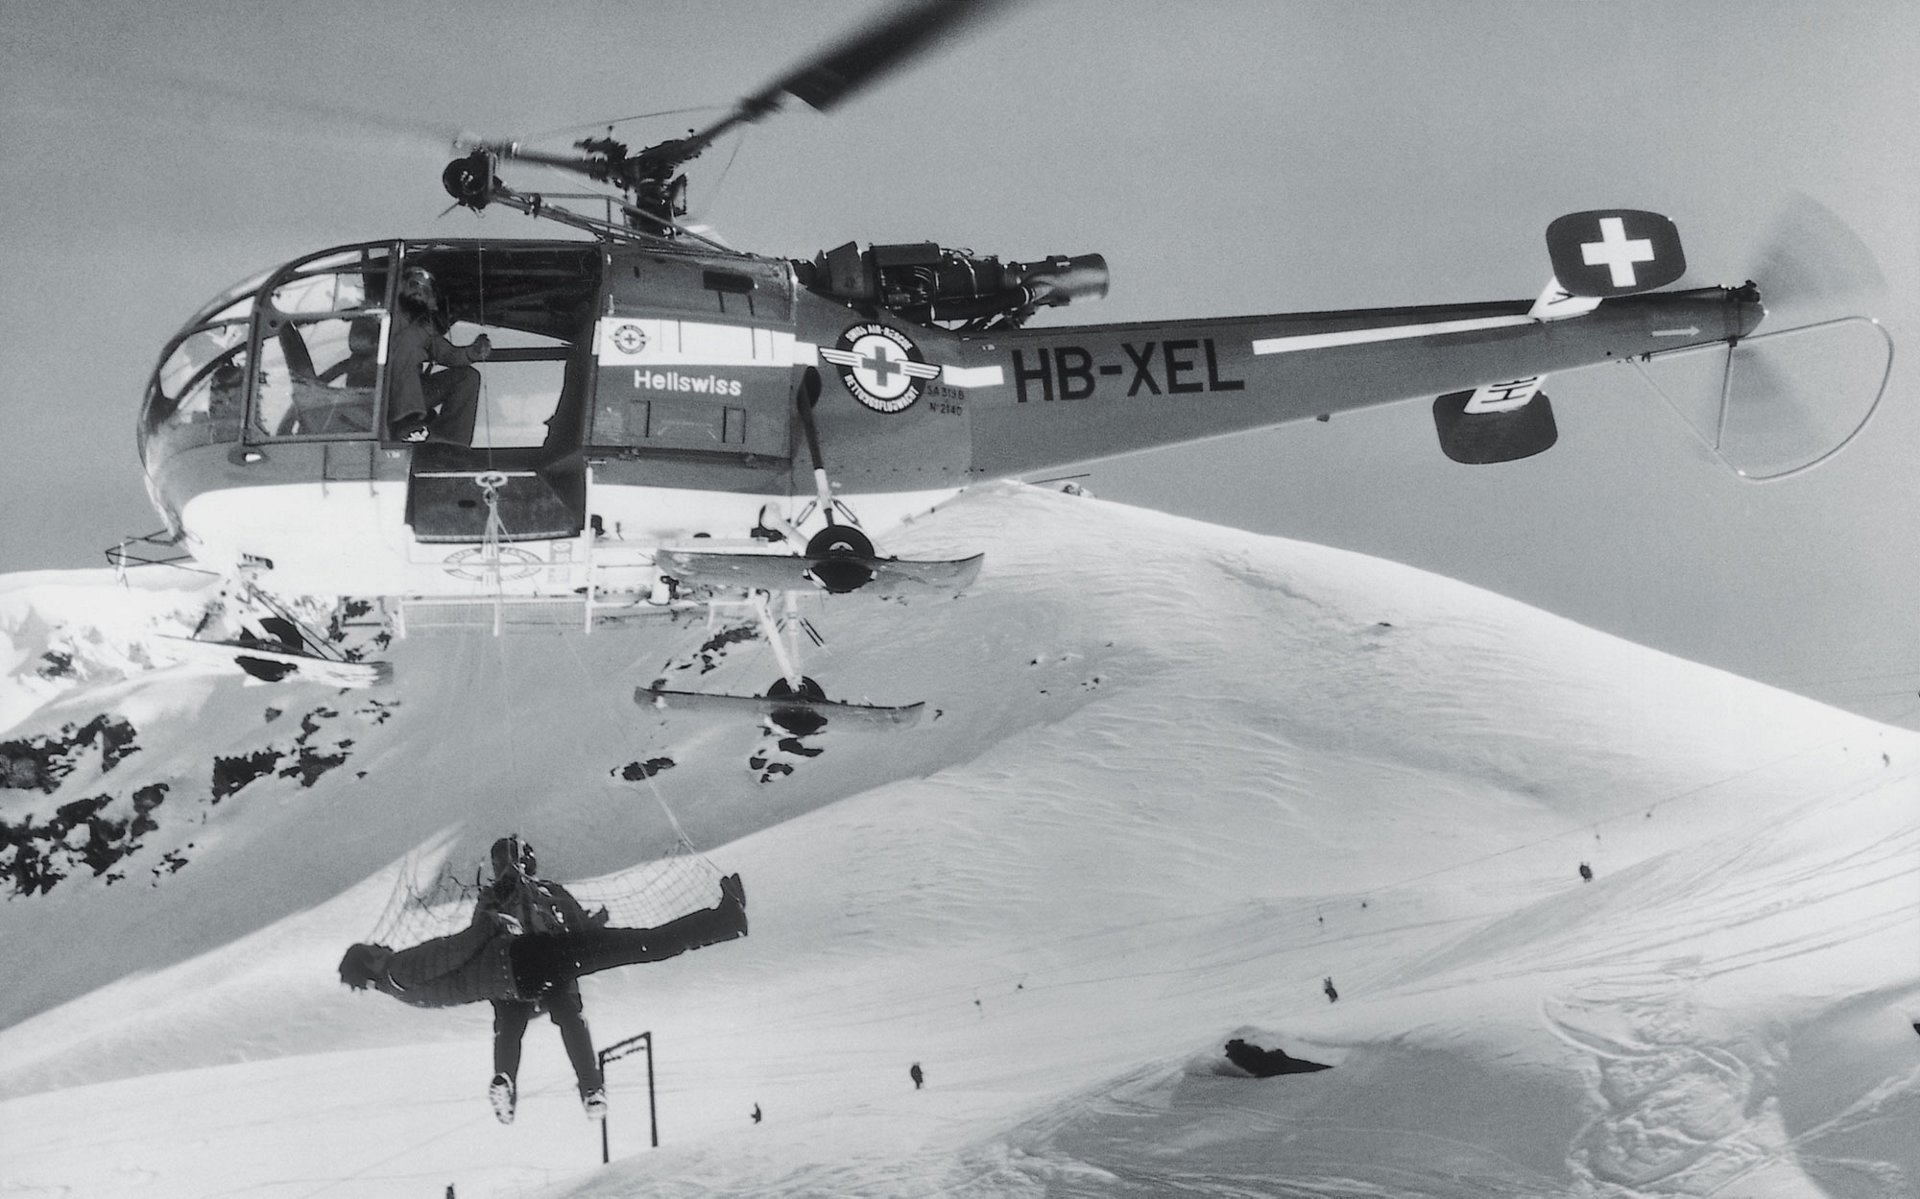 The Alouette III, which performed its maiden flight in 1959, quickly established itself as a helicopter capable of flying at very high altitudes